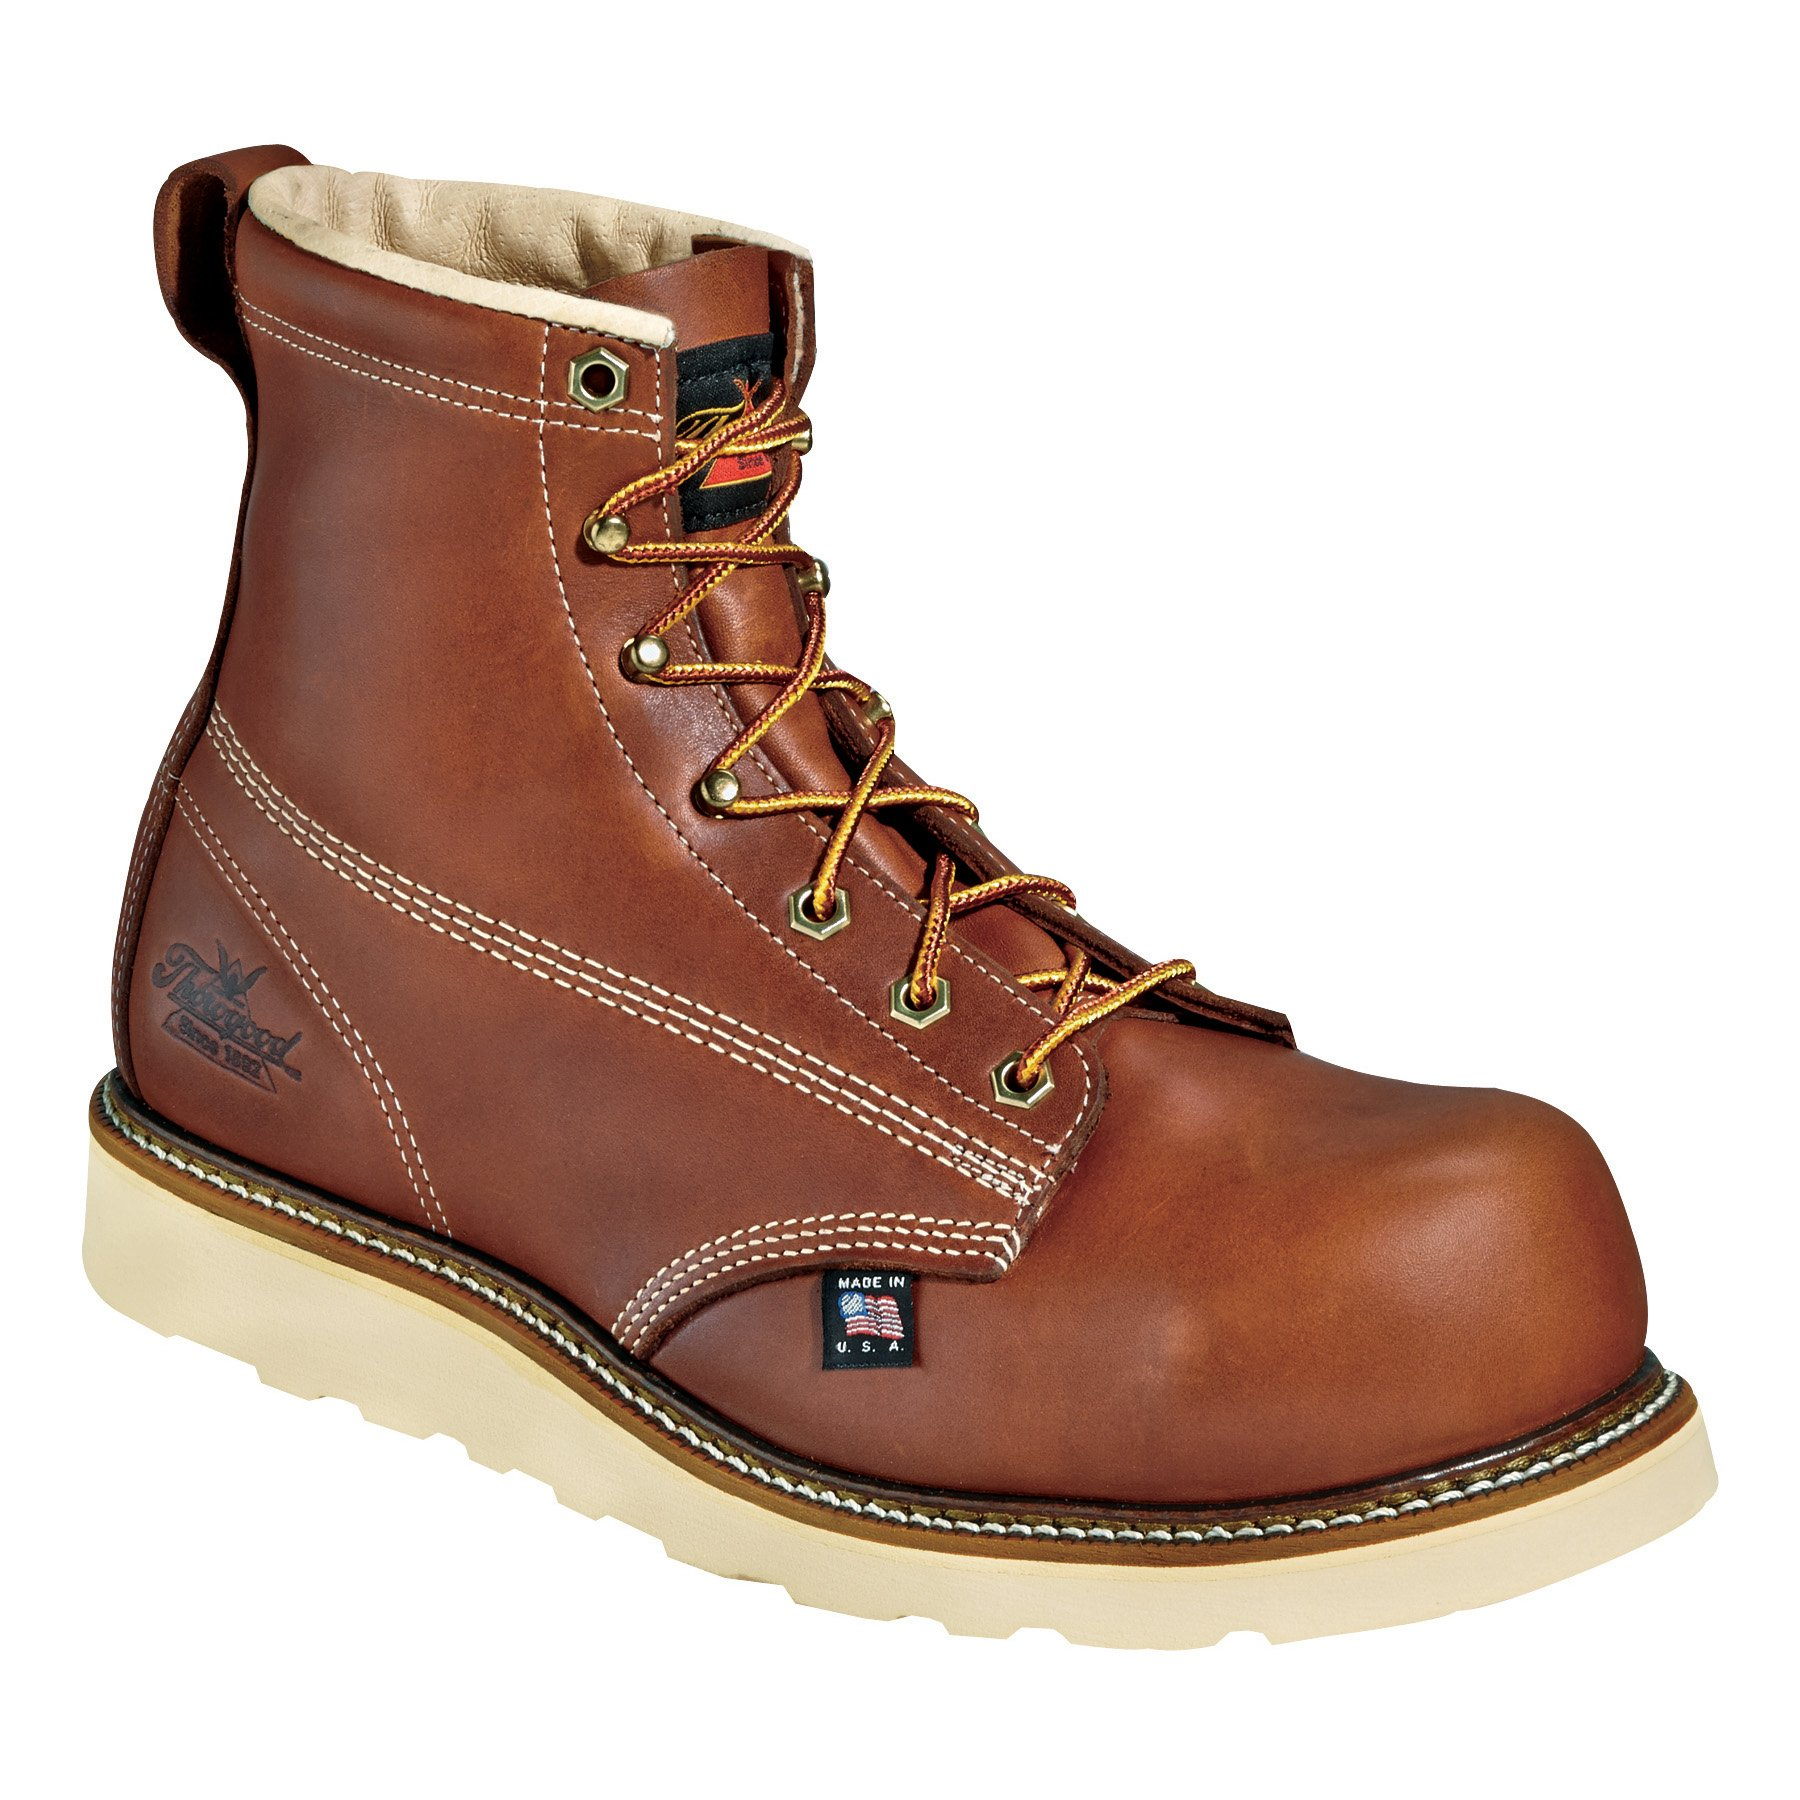 Thorogood Work Boots Mens Composite Toe Wedges 11.5 D Tobacco 804-4655